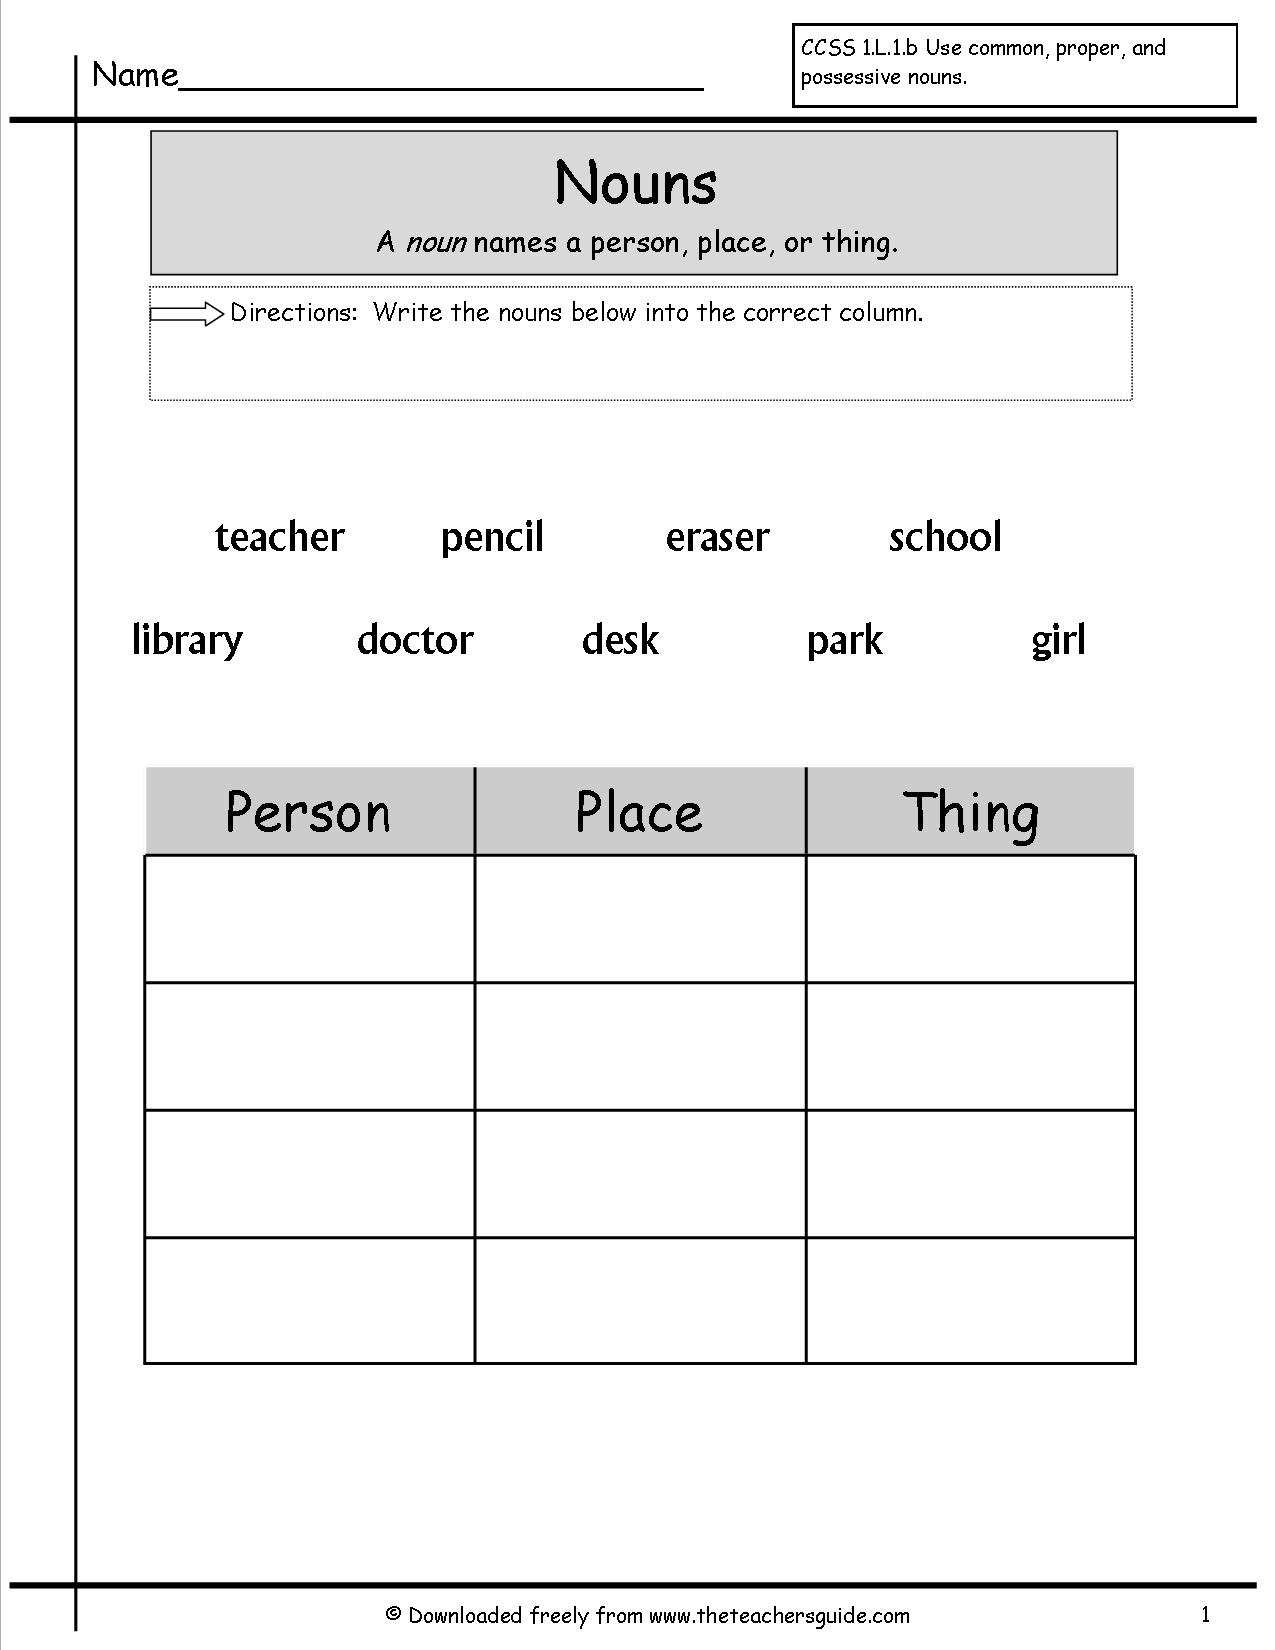 15 Best Images Of Noun Worksheets For Kindergarten